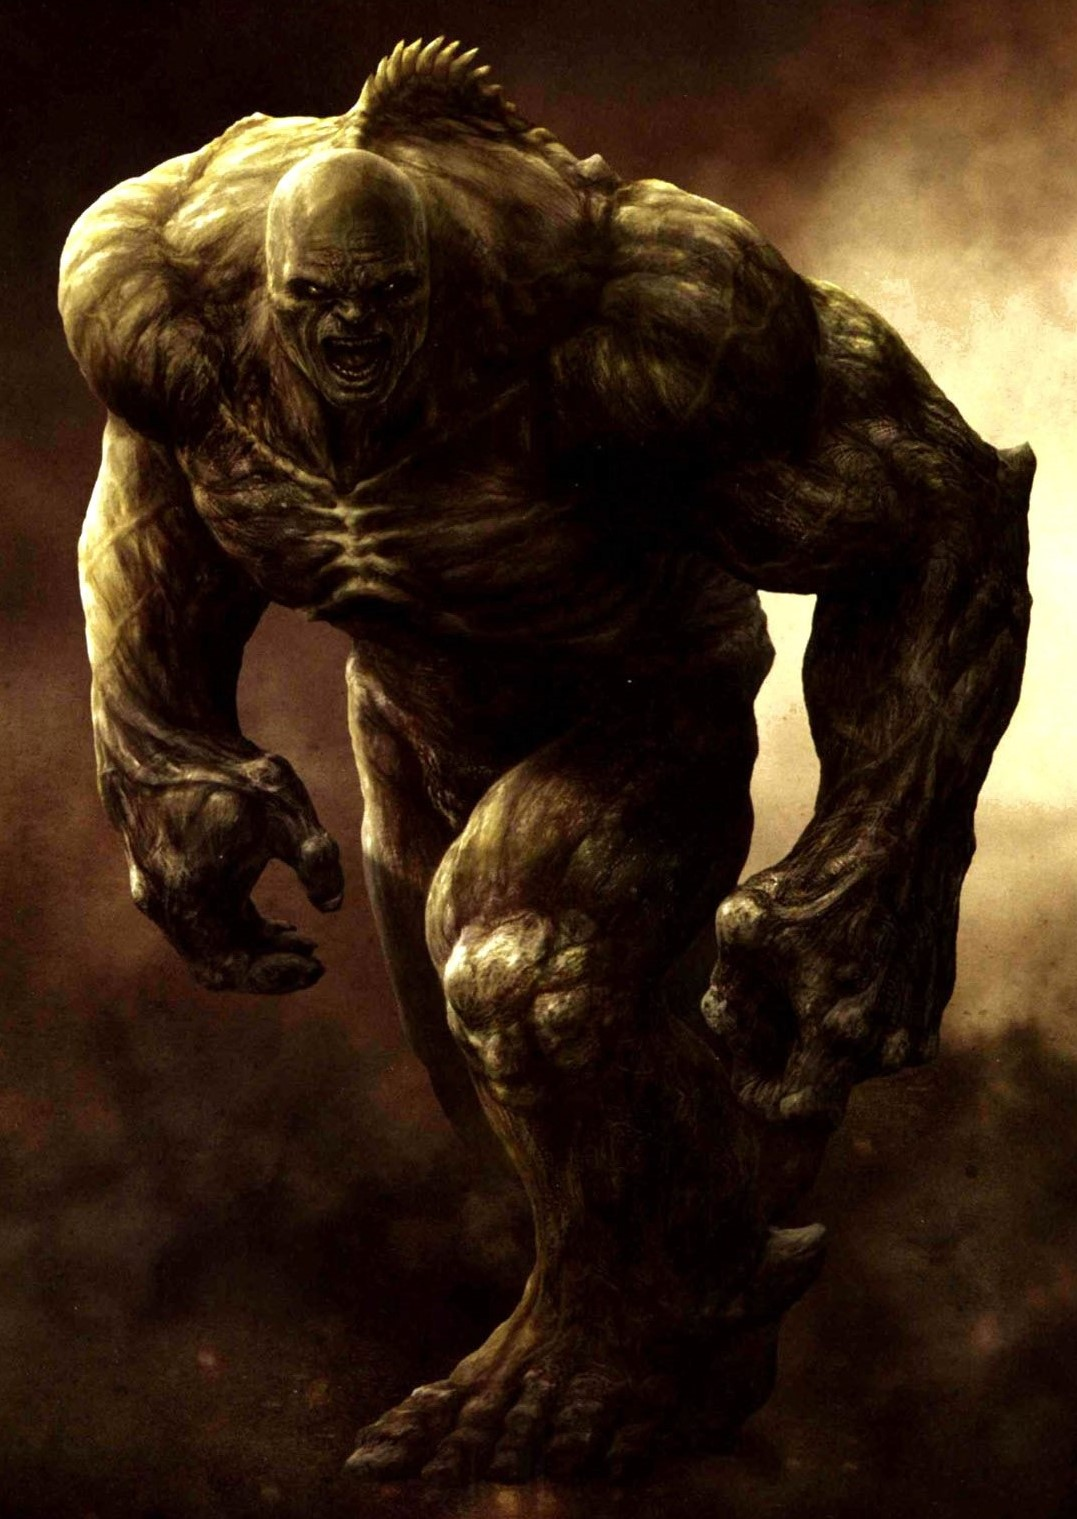 Abomination (Marvel Cinematic Universe)